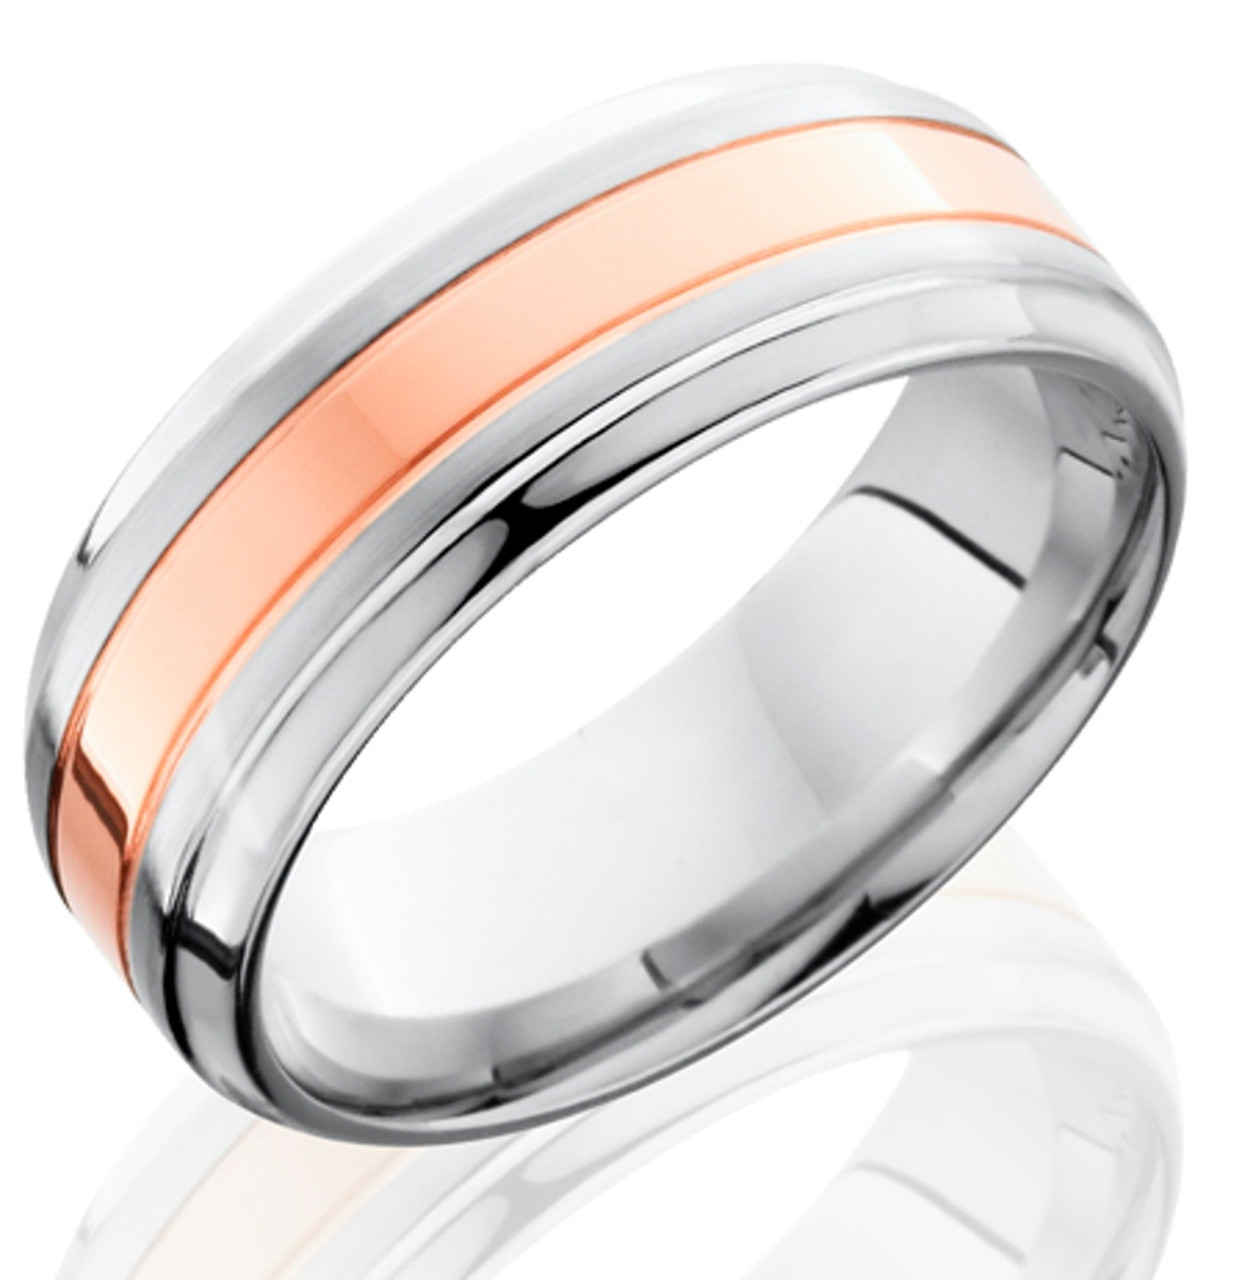 Elegant Menu0027s Grooved Edge Cobalt Wedding Ring With Rose Gold Inlay Good Ideas